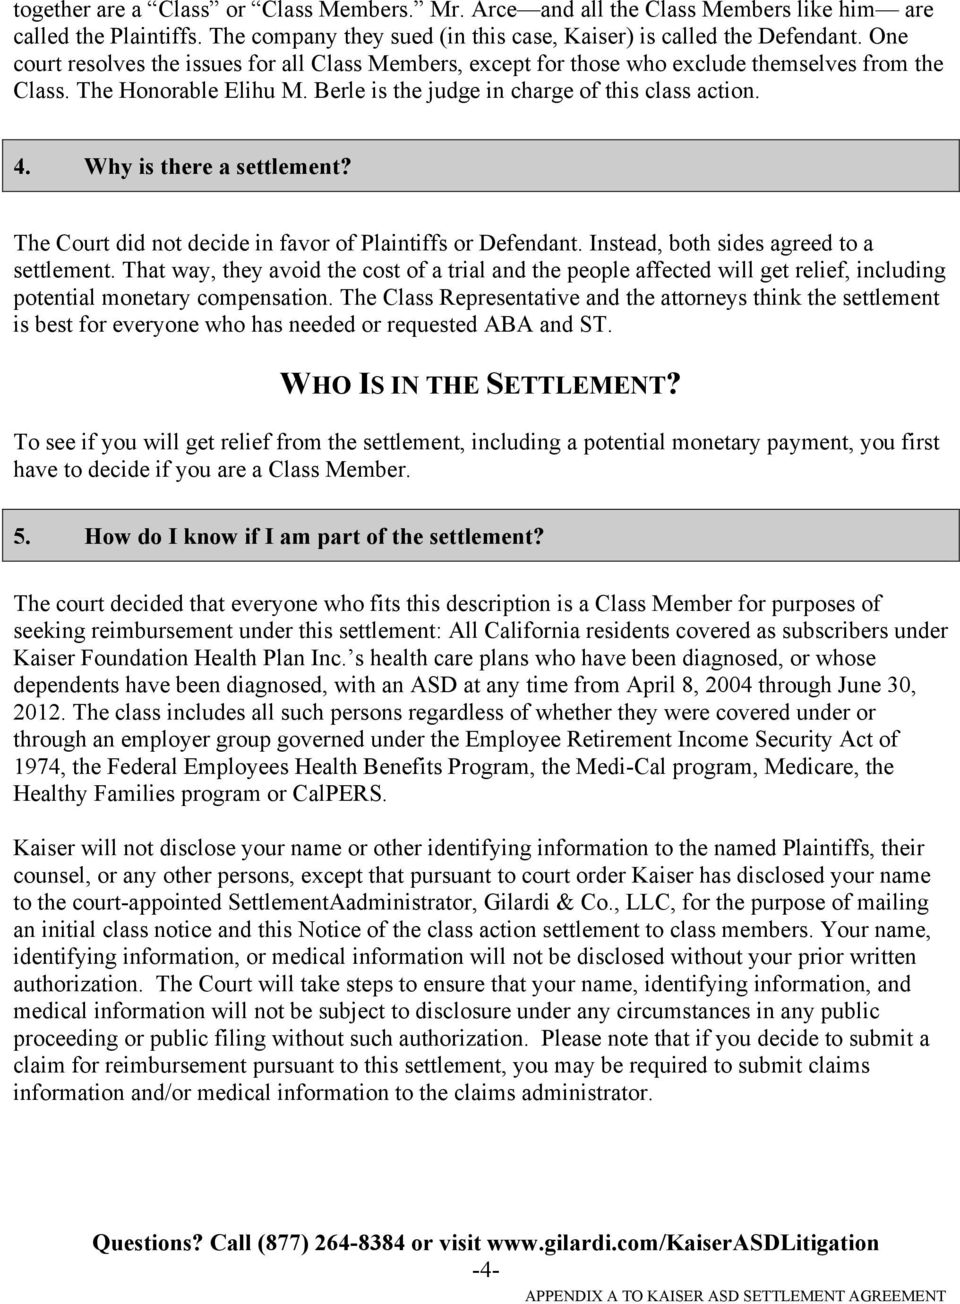 Why is there a settlement? The Court did not decide in favor of Plaintiffs or Defendant. Instead, both sides agreed to a settlement.